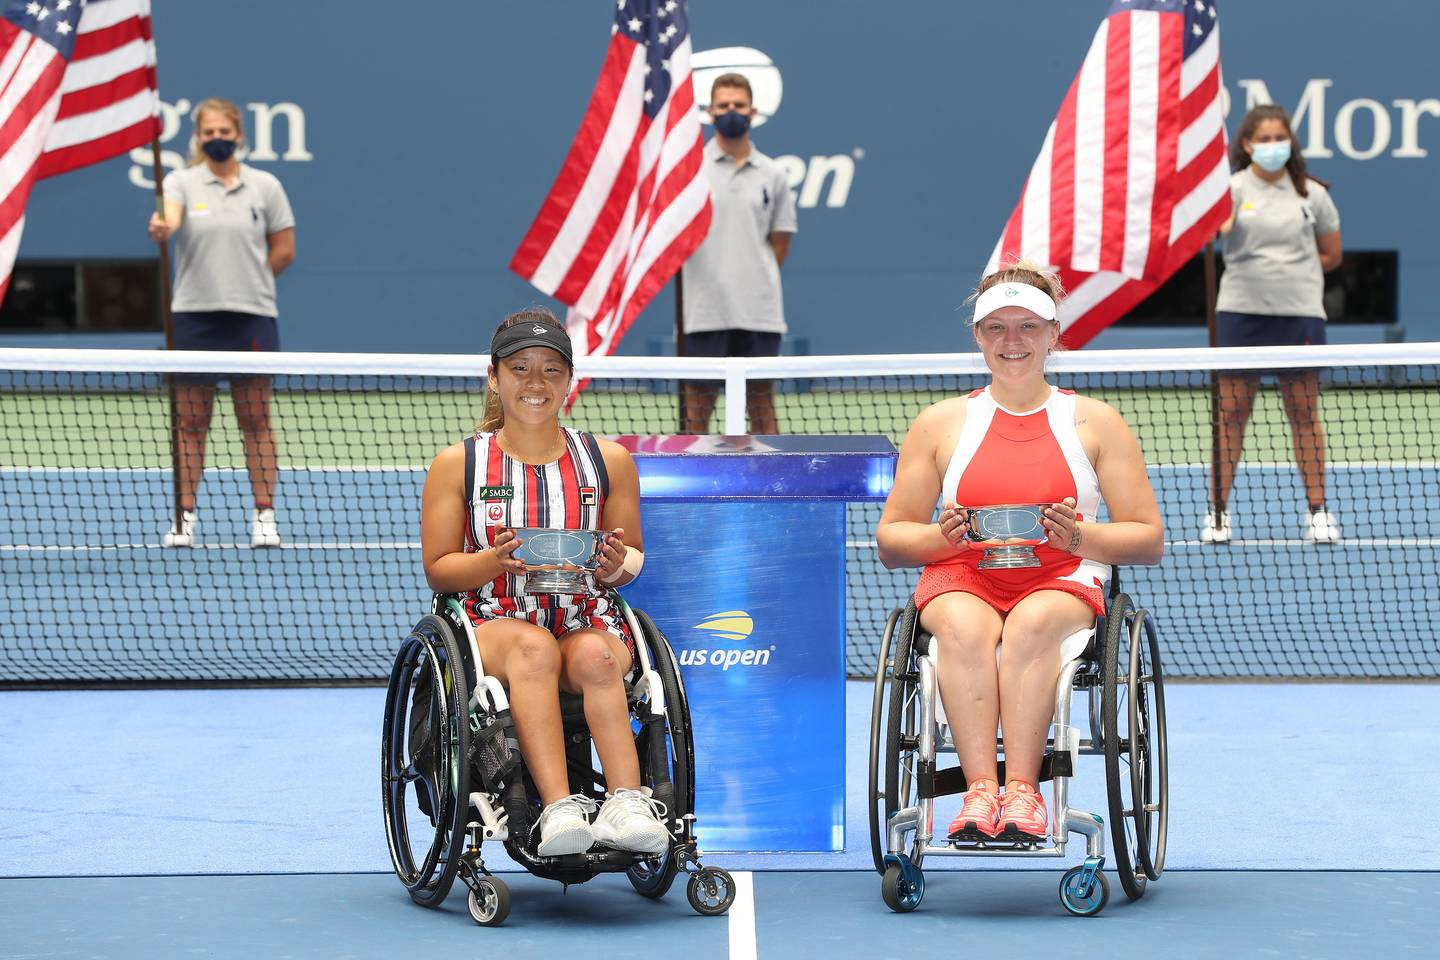 Jordanne Whiley and Yui Kamiji holding Women's Doubles Champions trophies.